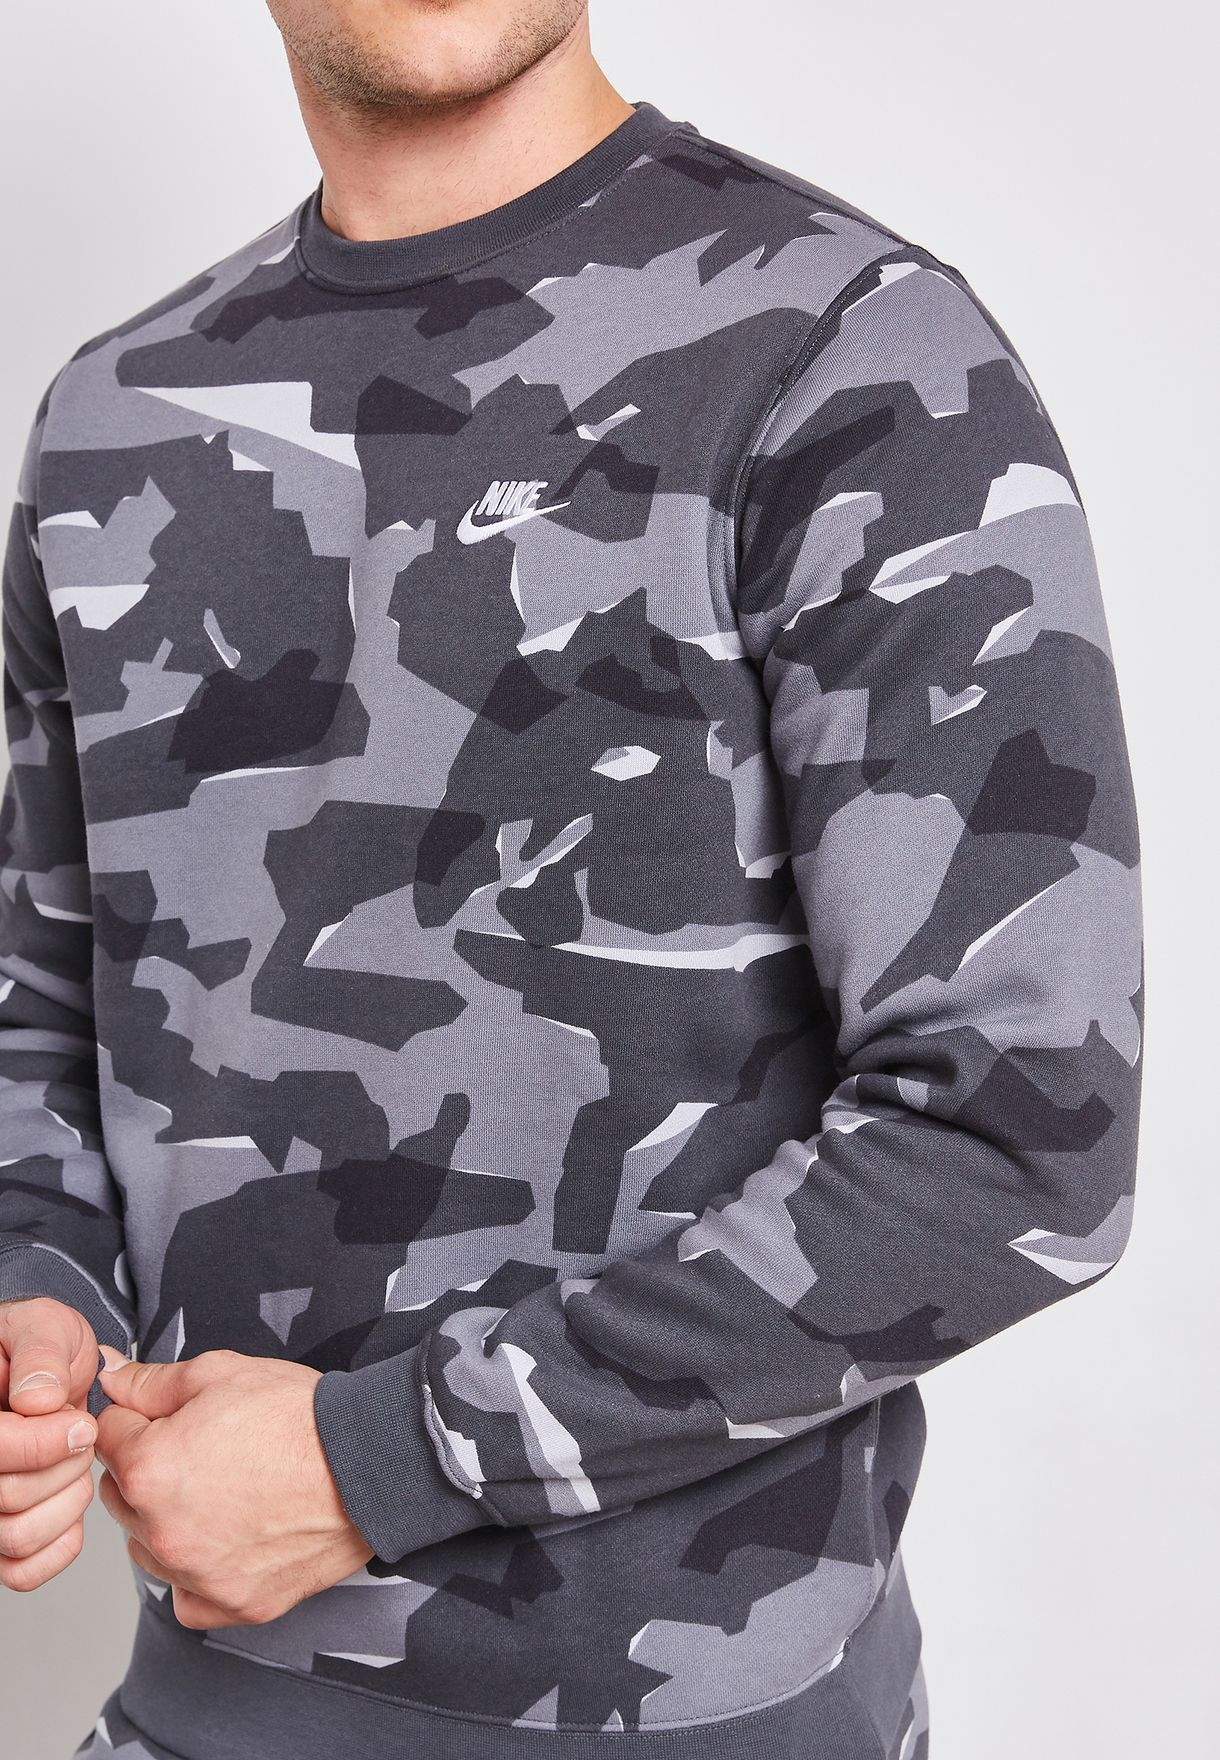 NSW Club Camo Sweatshirt